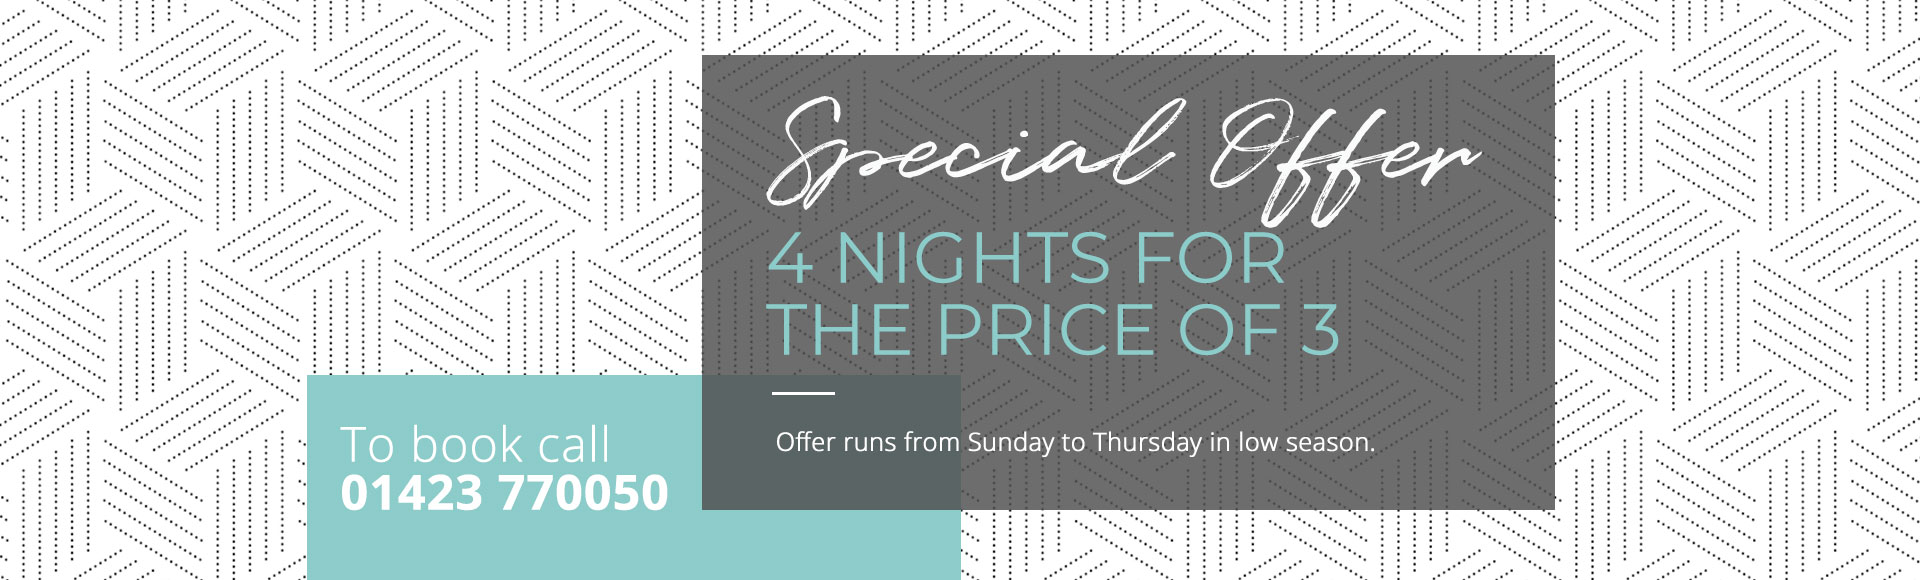 4nights_for_the_price_of_3